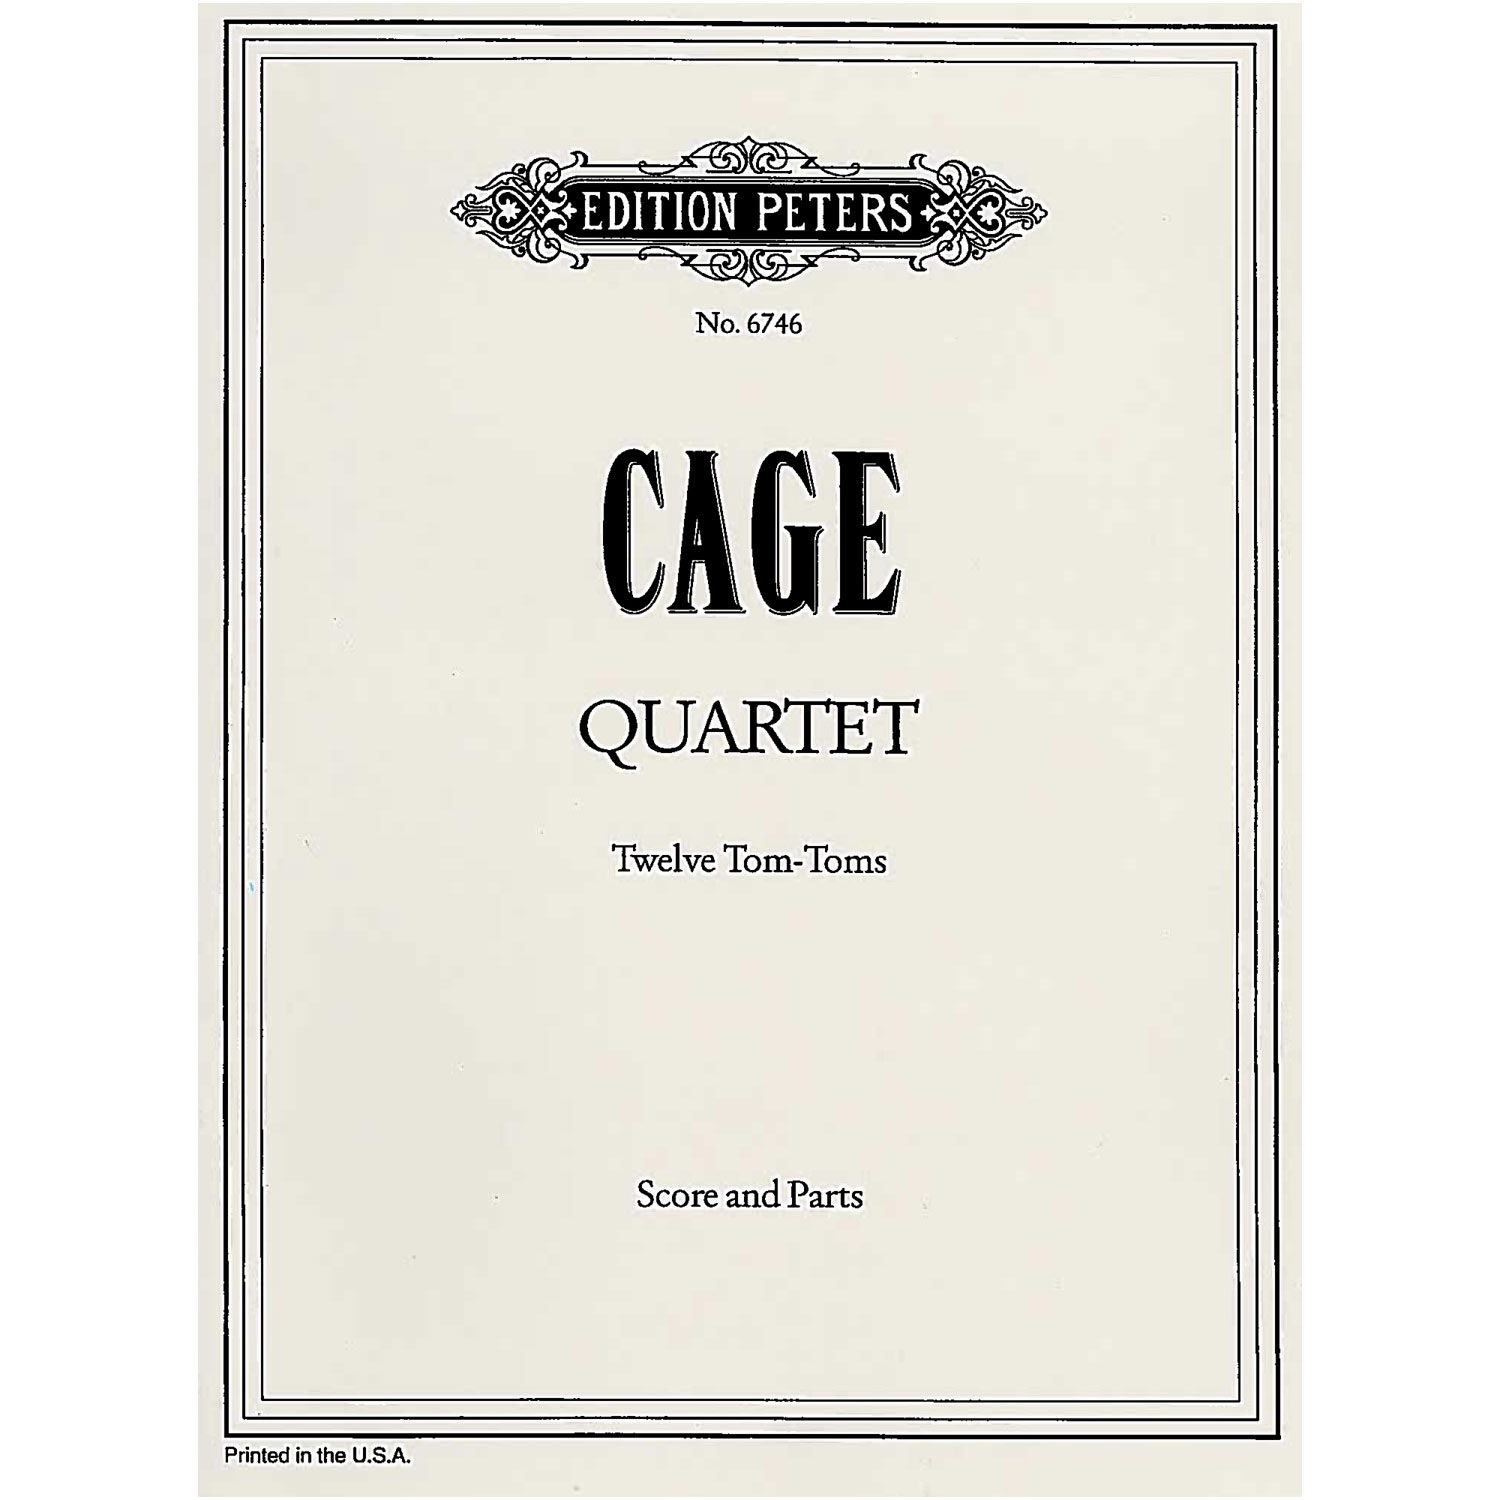 Quartet for Twelve Tom-Toms (from She is Asleep) by John Cage